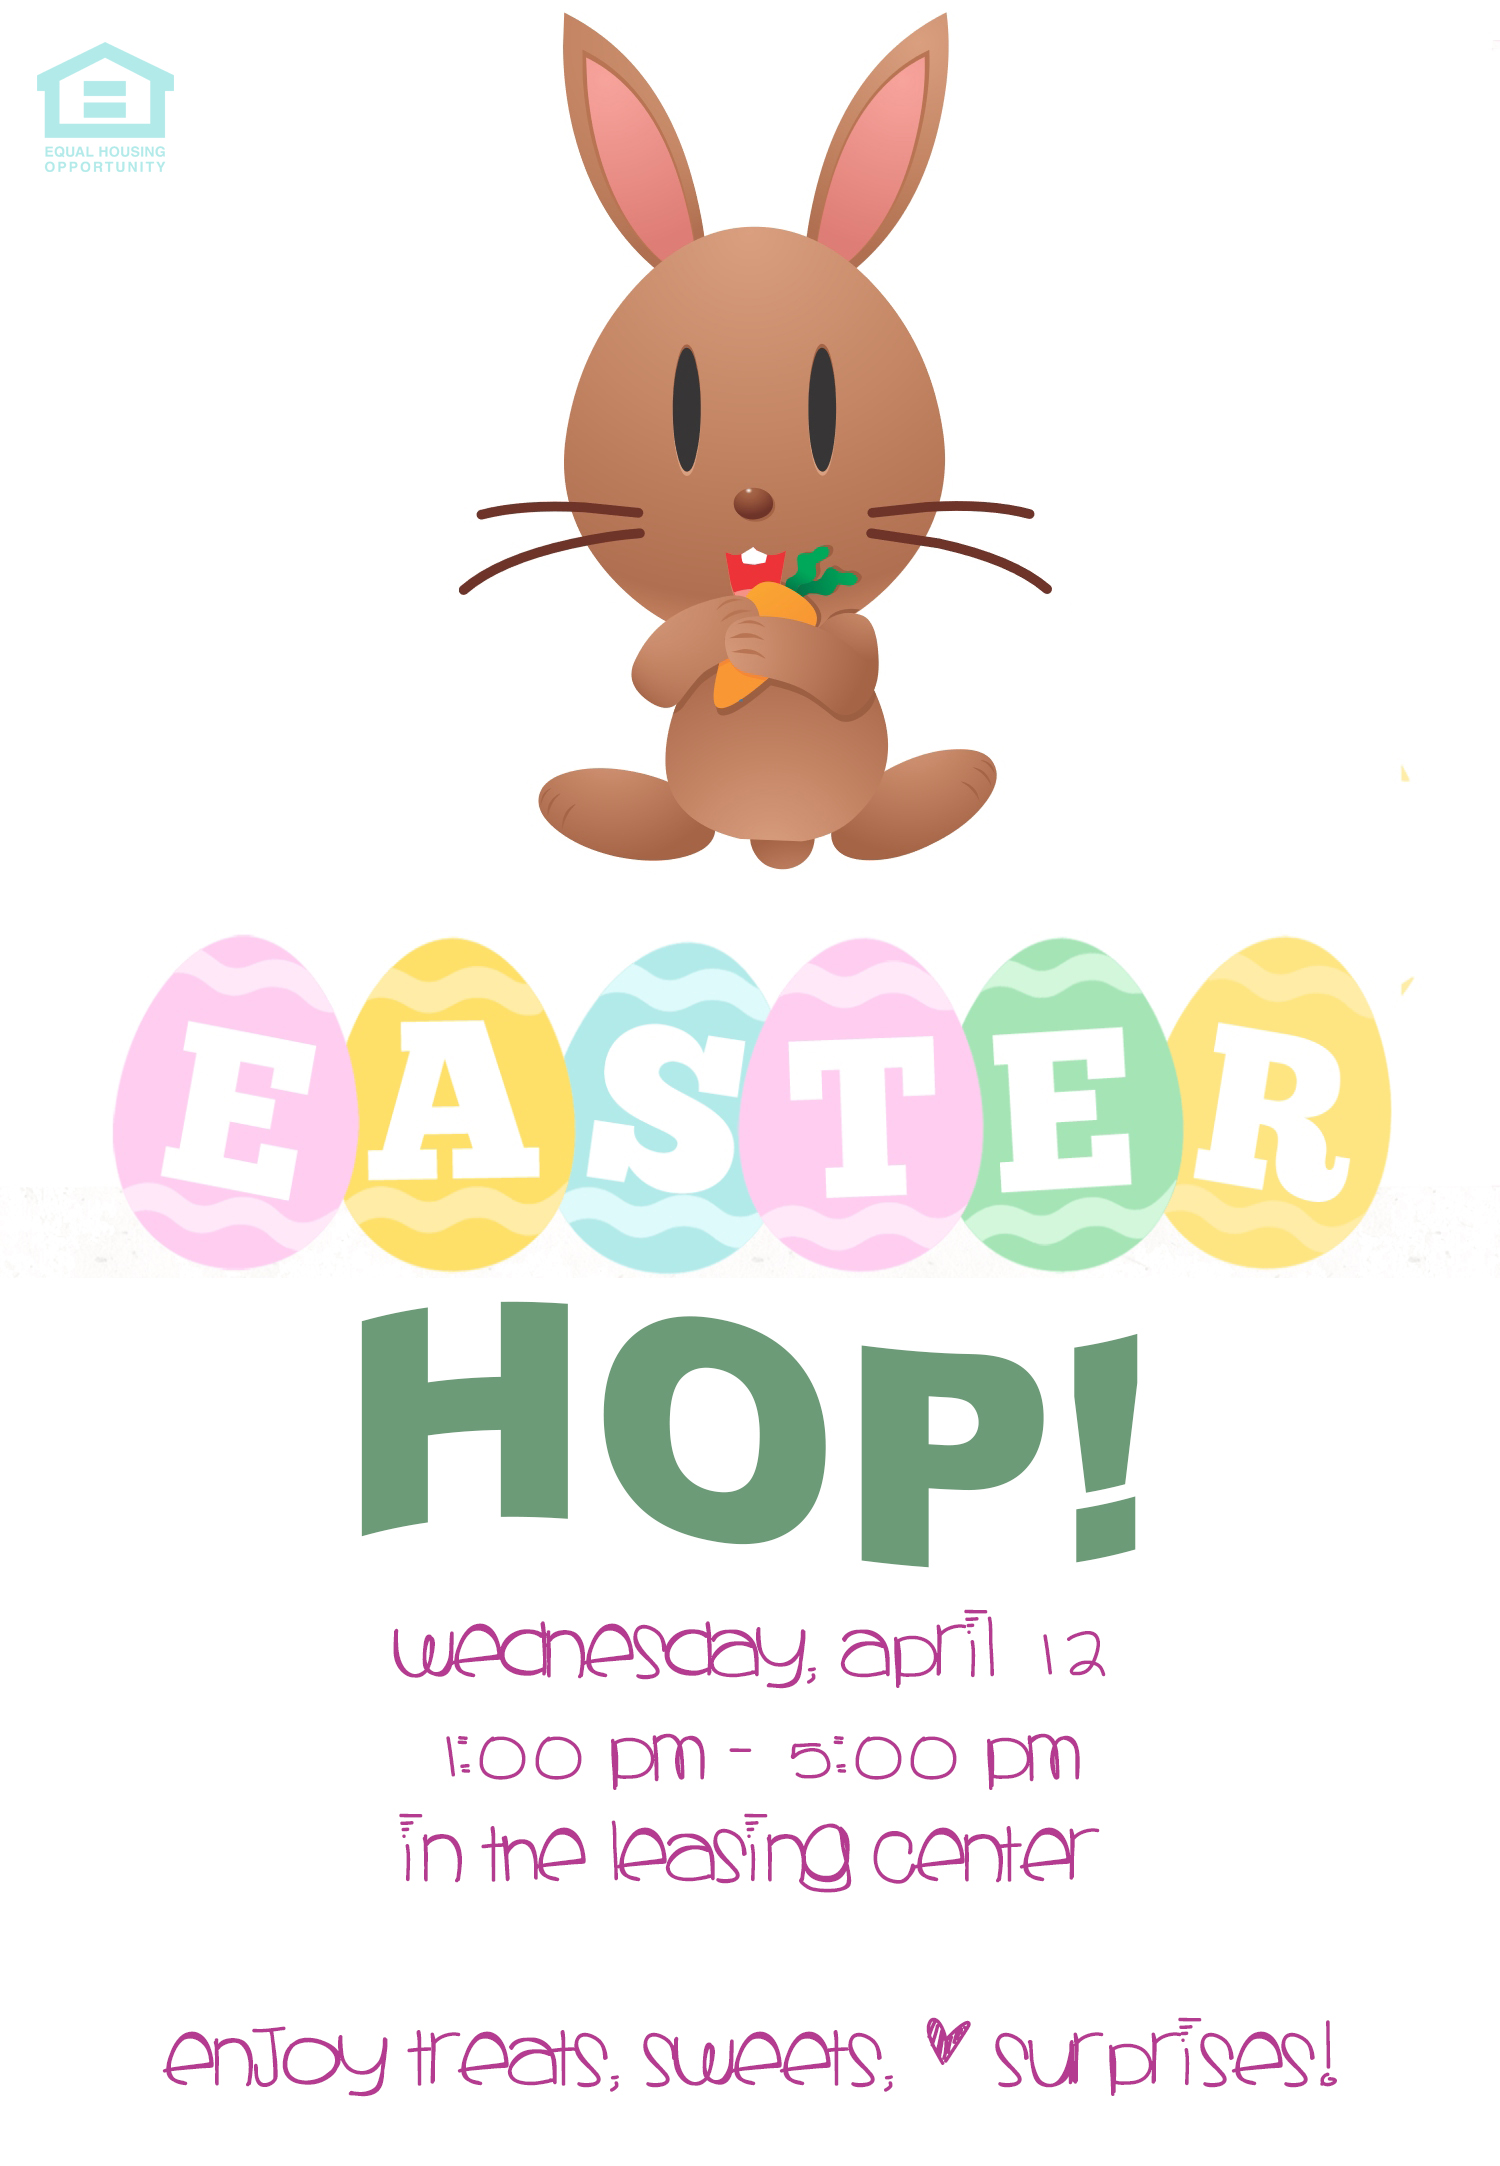 Easter at Hallfield Apartments & Olde Forge Townhomes in Nottingham, MD